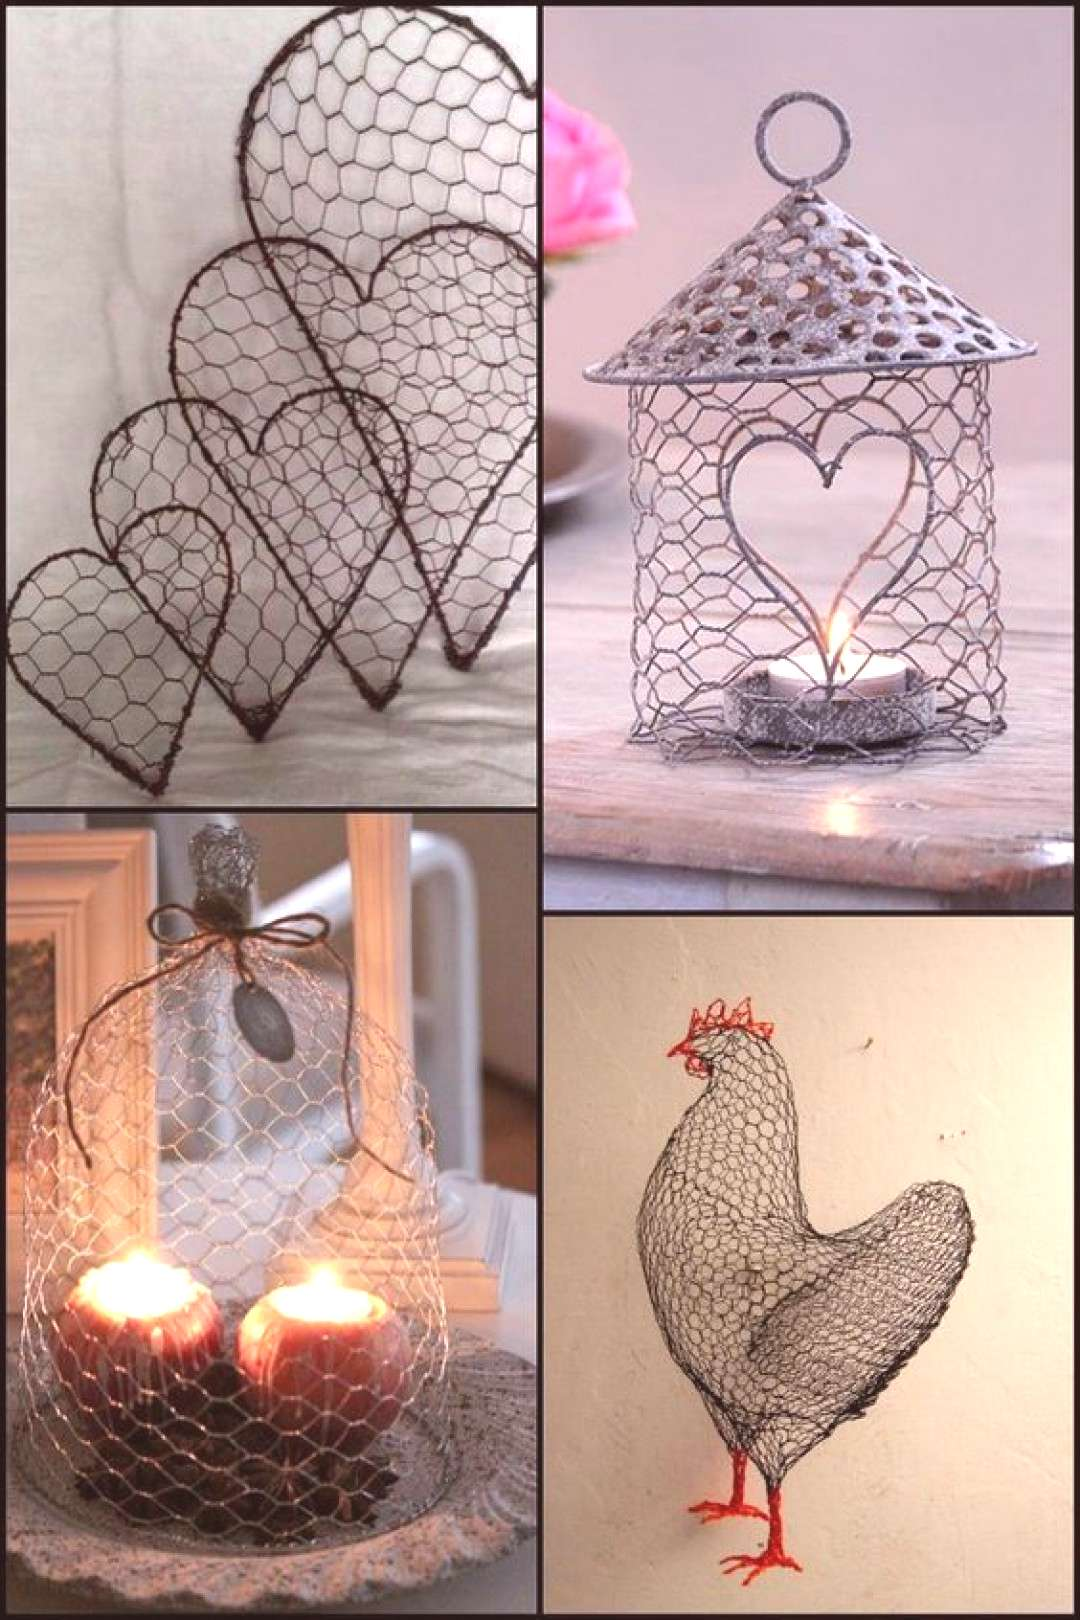 Make Use of Your Excess Chicken Wire with These Beautiful Craft Ideas!